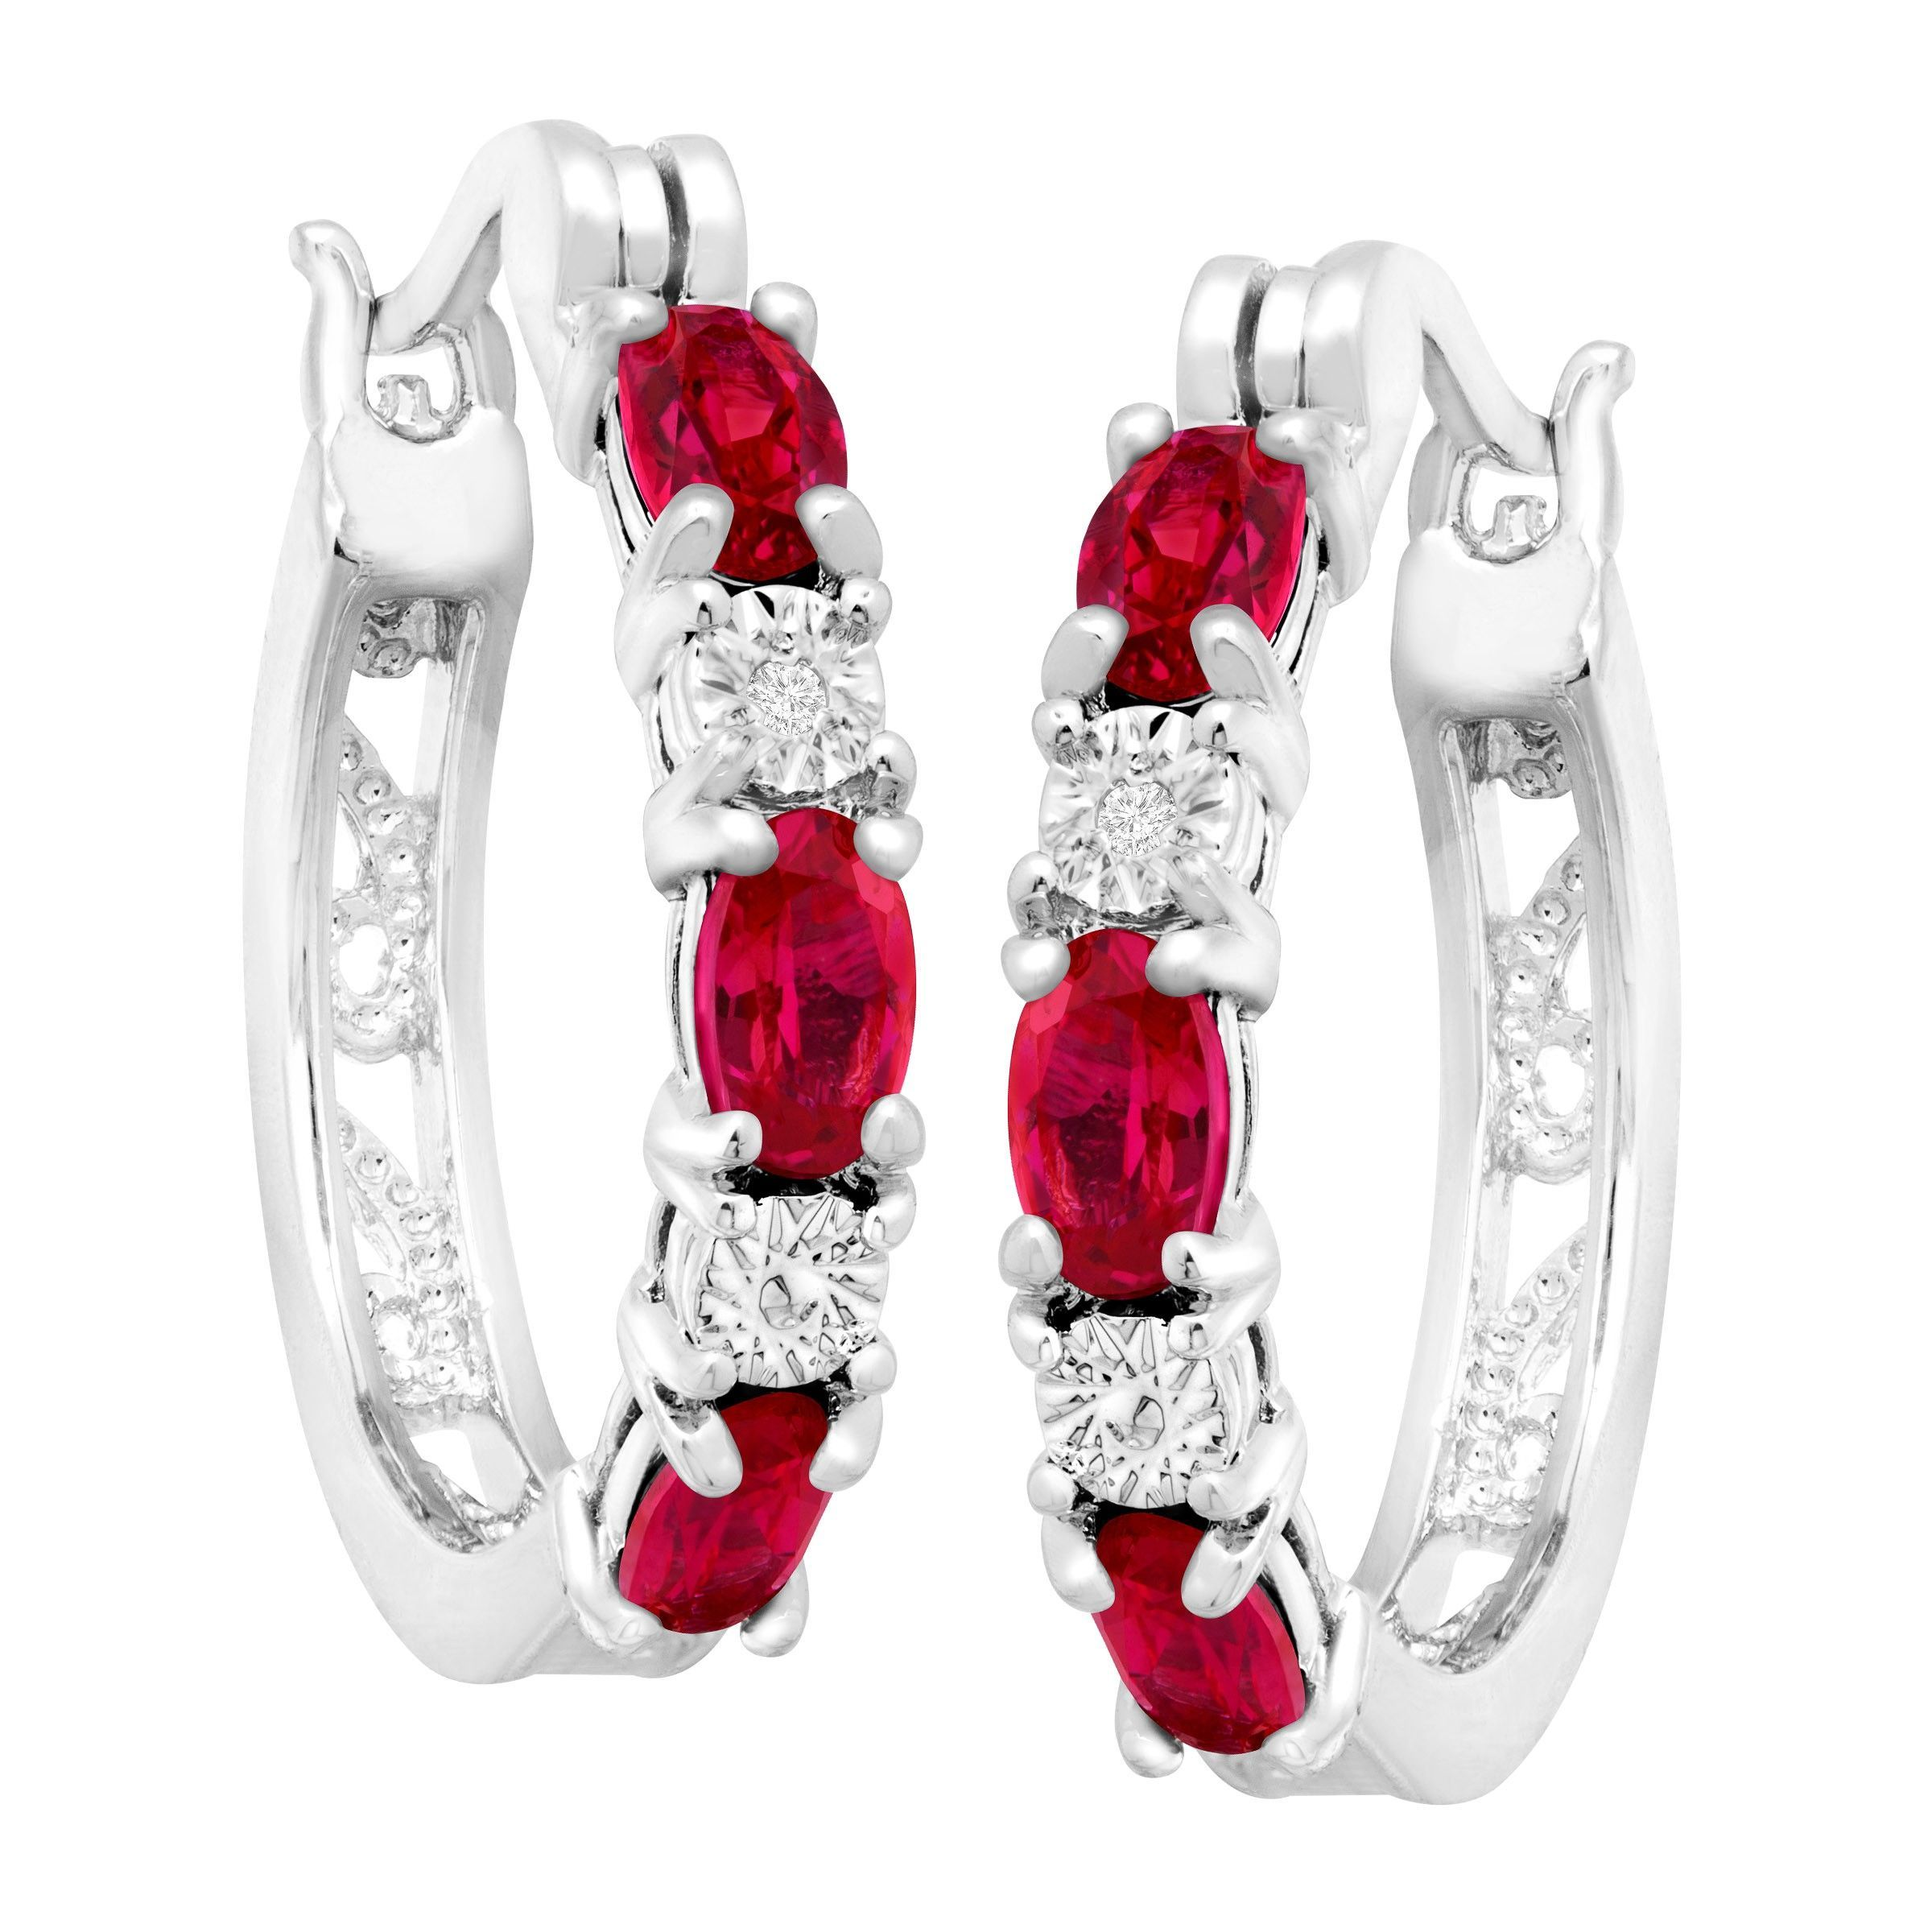 Gemstone-Hoop-Earrings-with-Diamonds-in-Platinum-Plated-Brass thumbnail 50